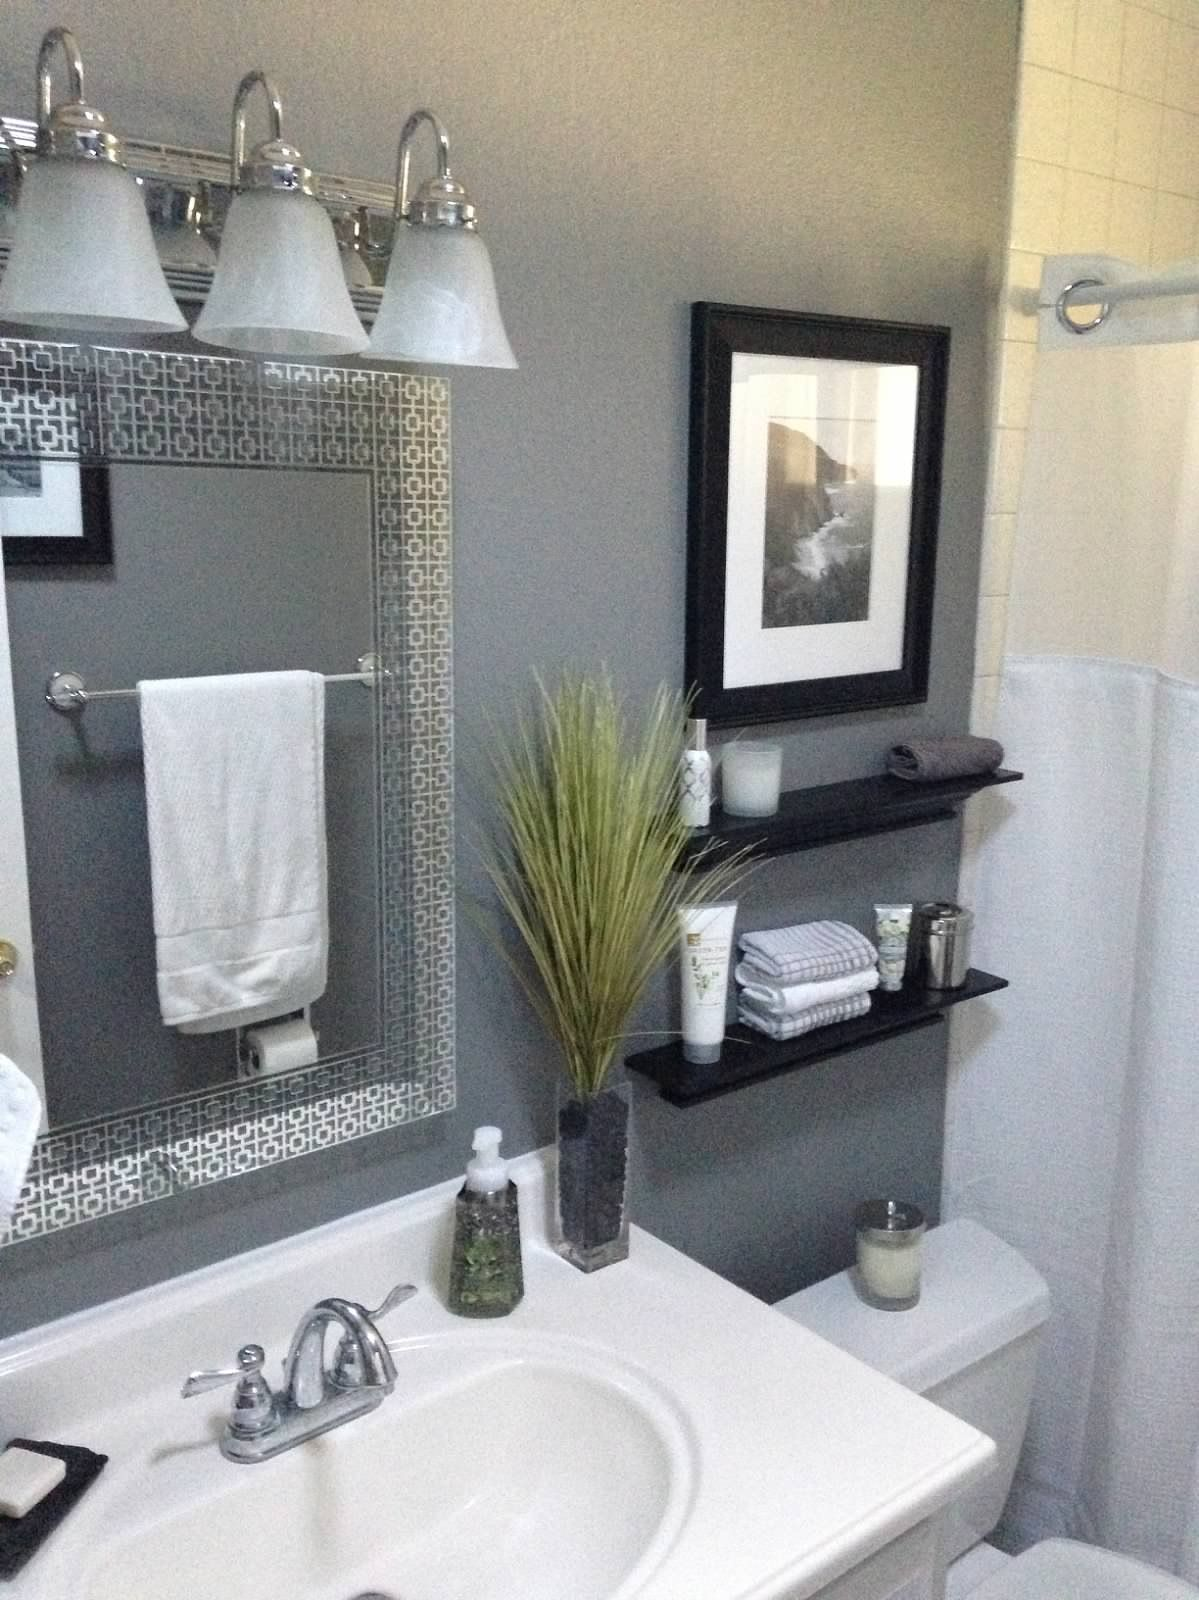 Small Bathroom Ideas Small Bathroom Decorating Ideas On A Budget Bathroom Design Small Small Bathroom